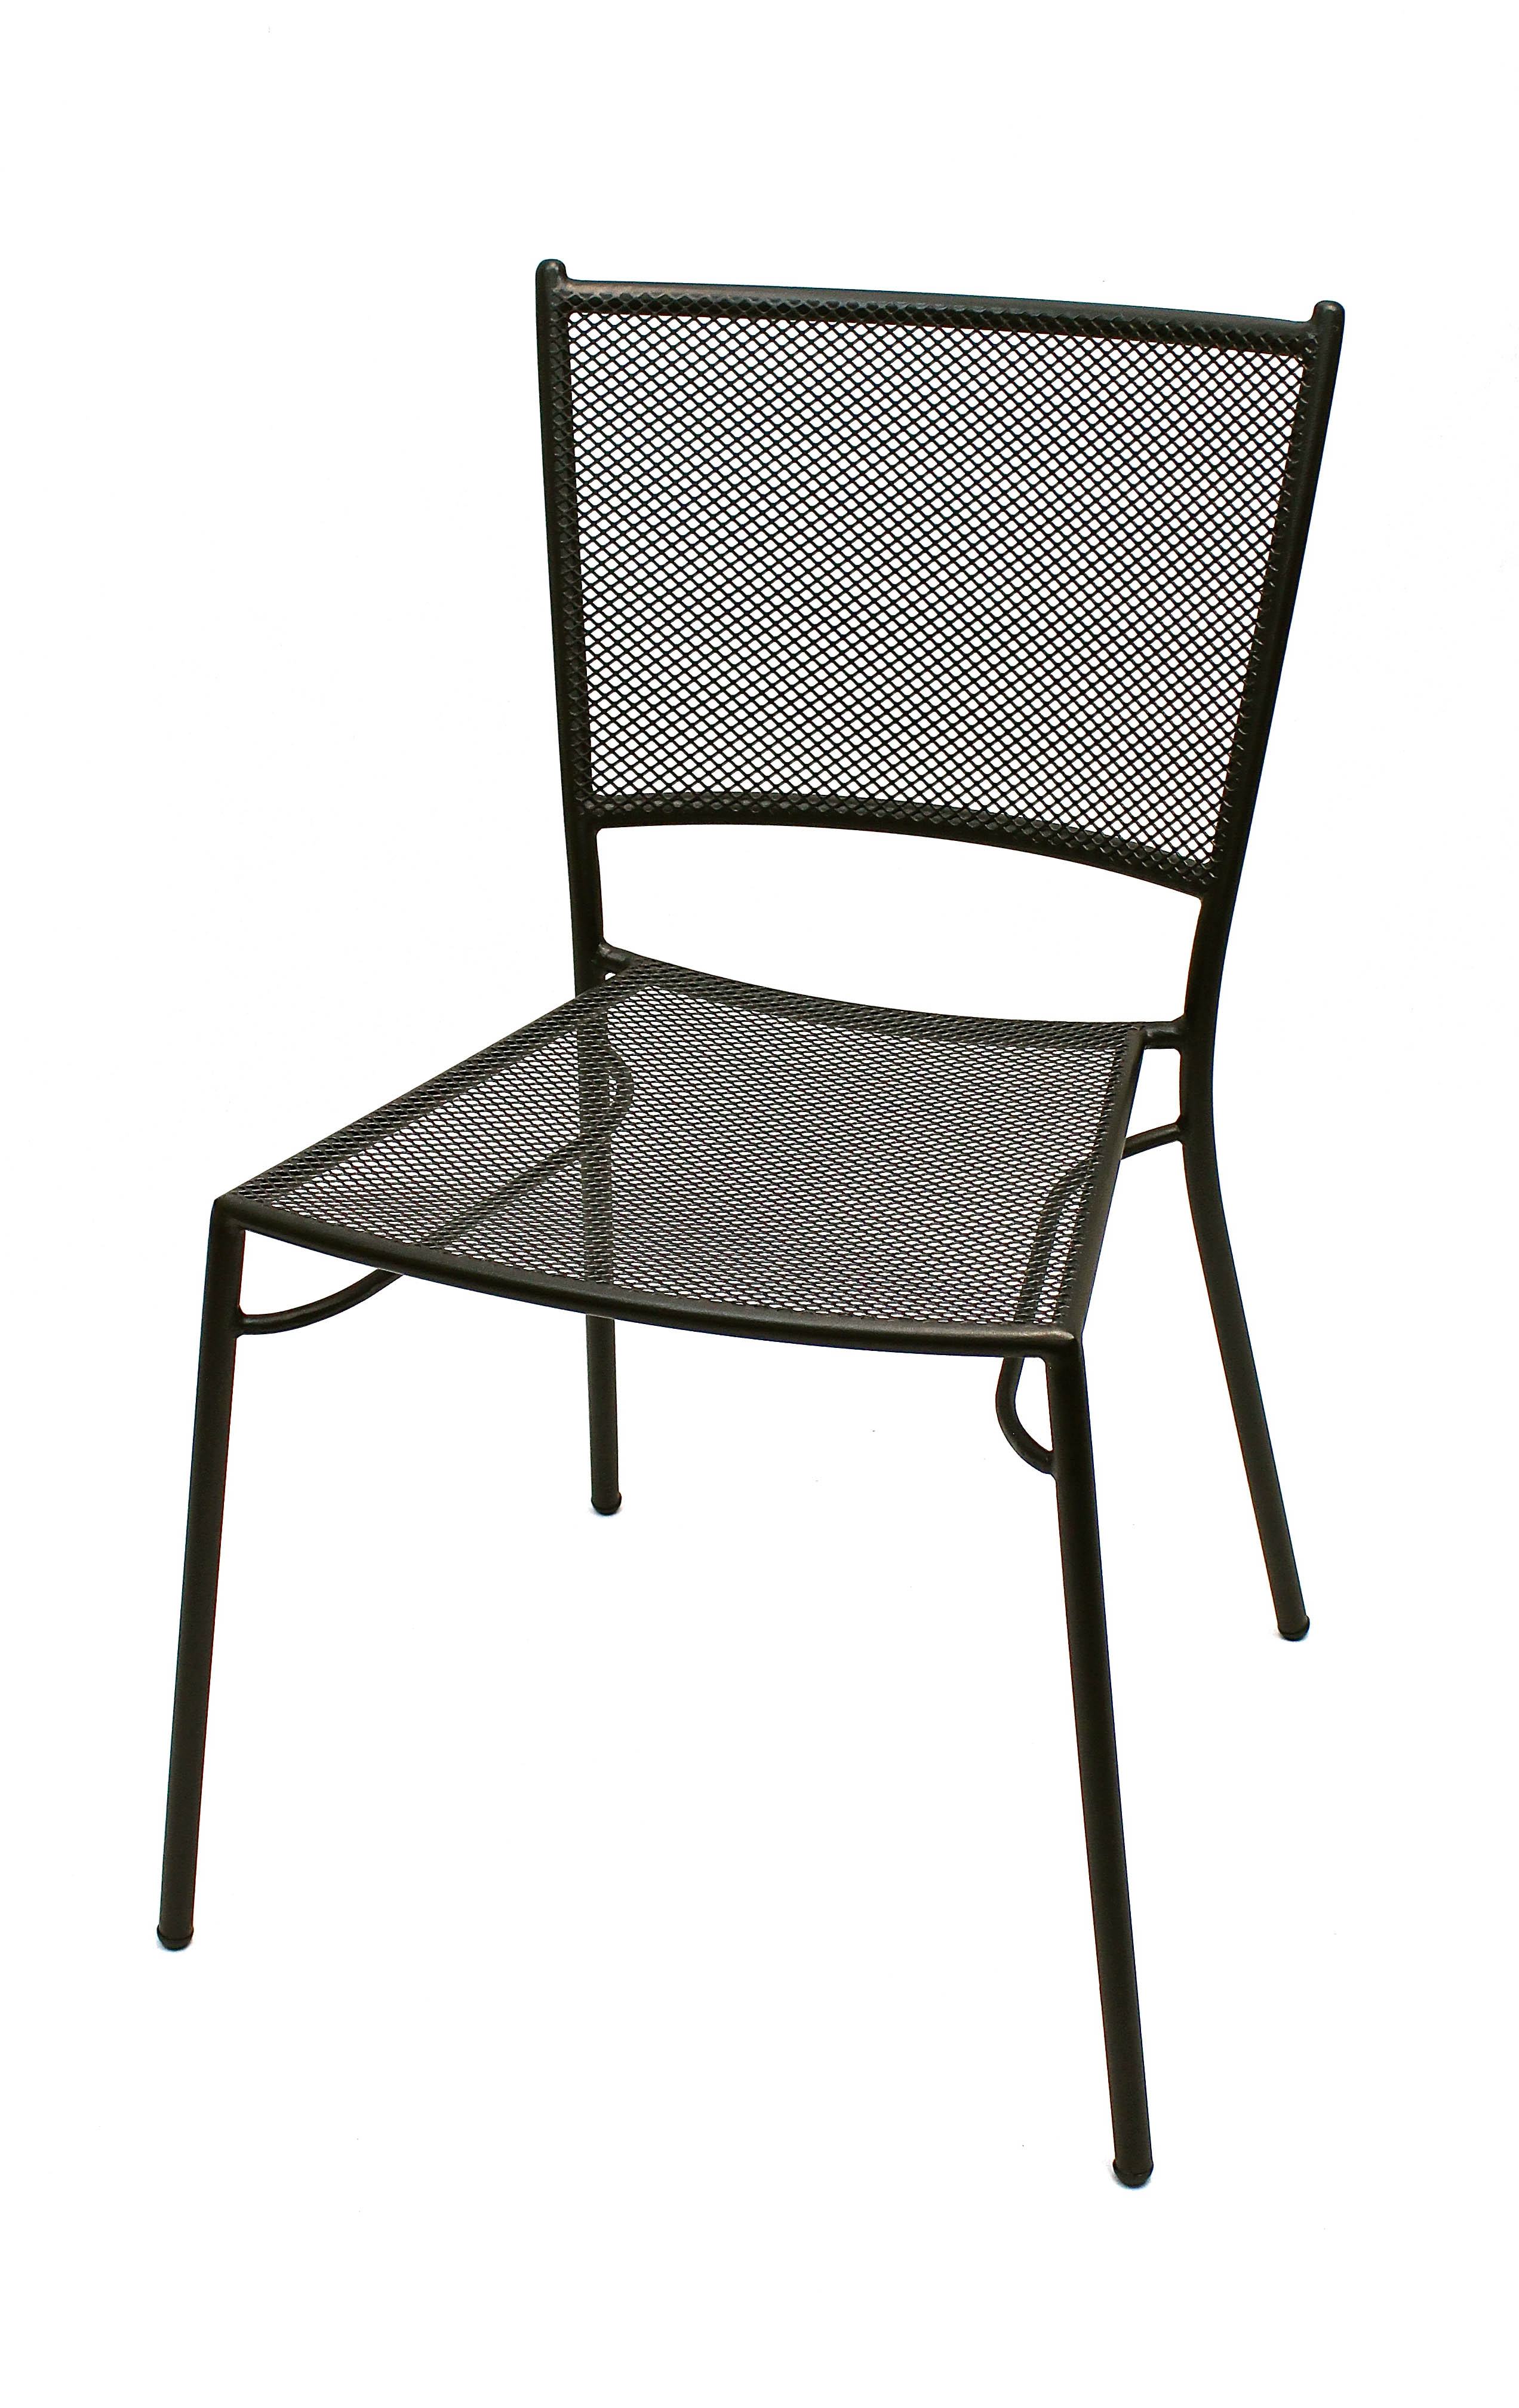 SoHo Bistro/ Cafe Chair